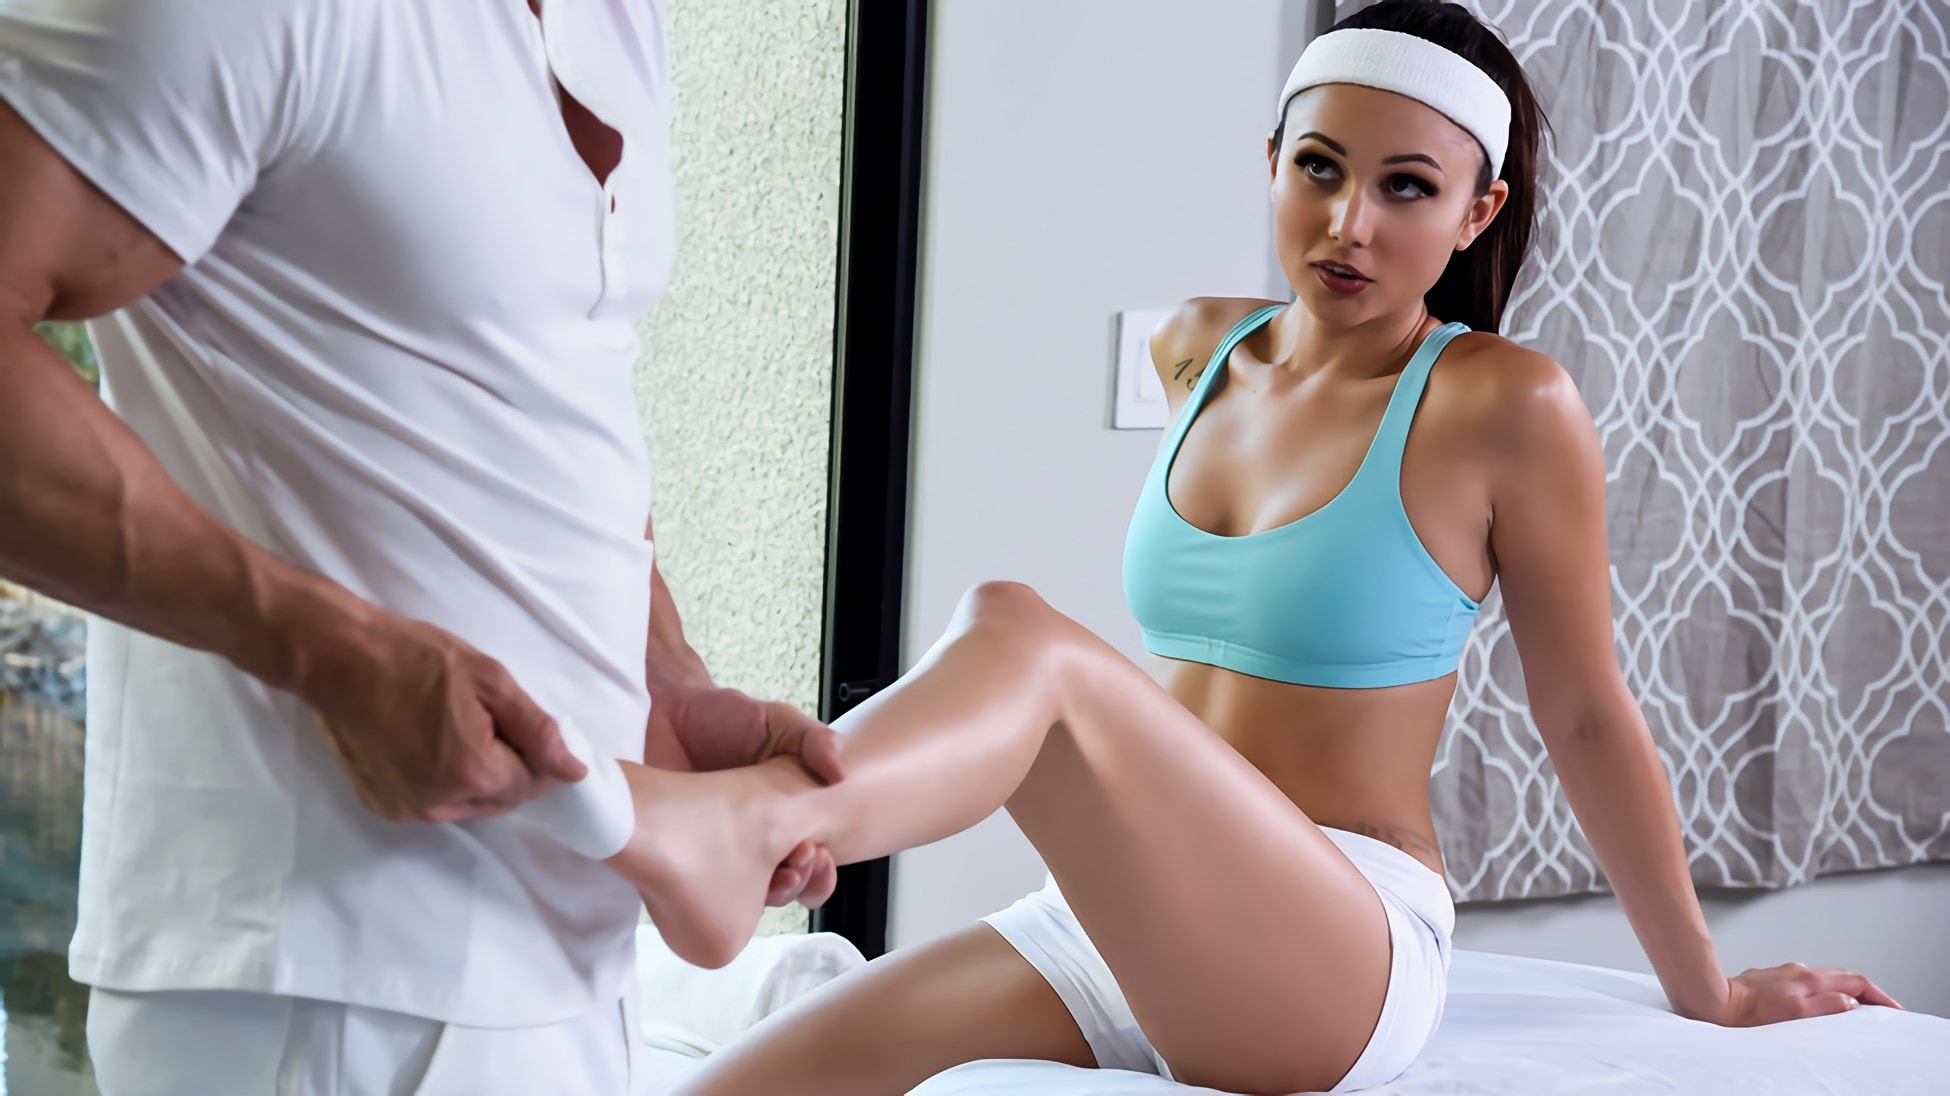 Brazzers 'Riding That Endorphin High' starring Ariana Marie (photo 6)